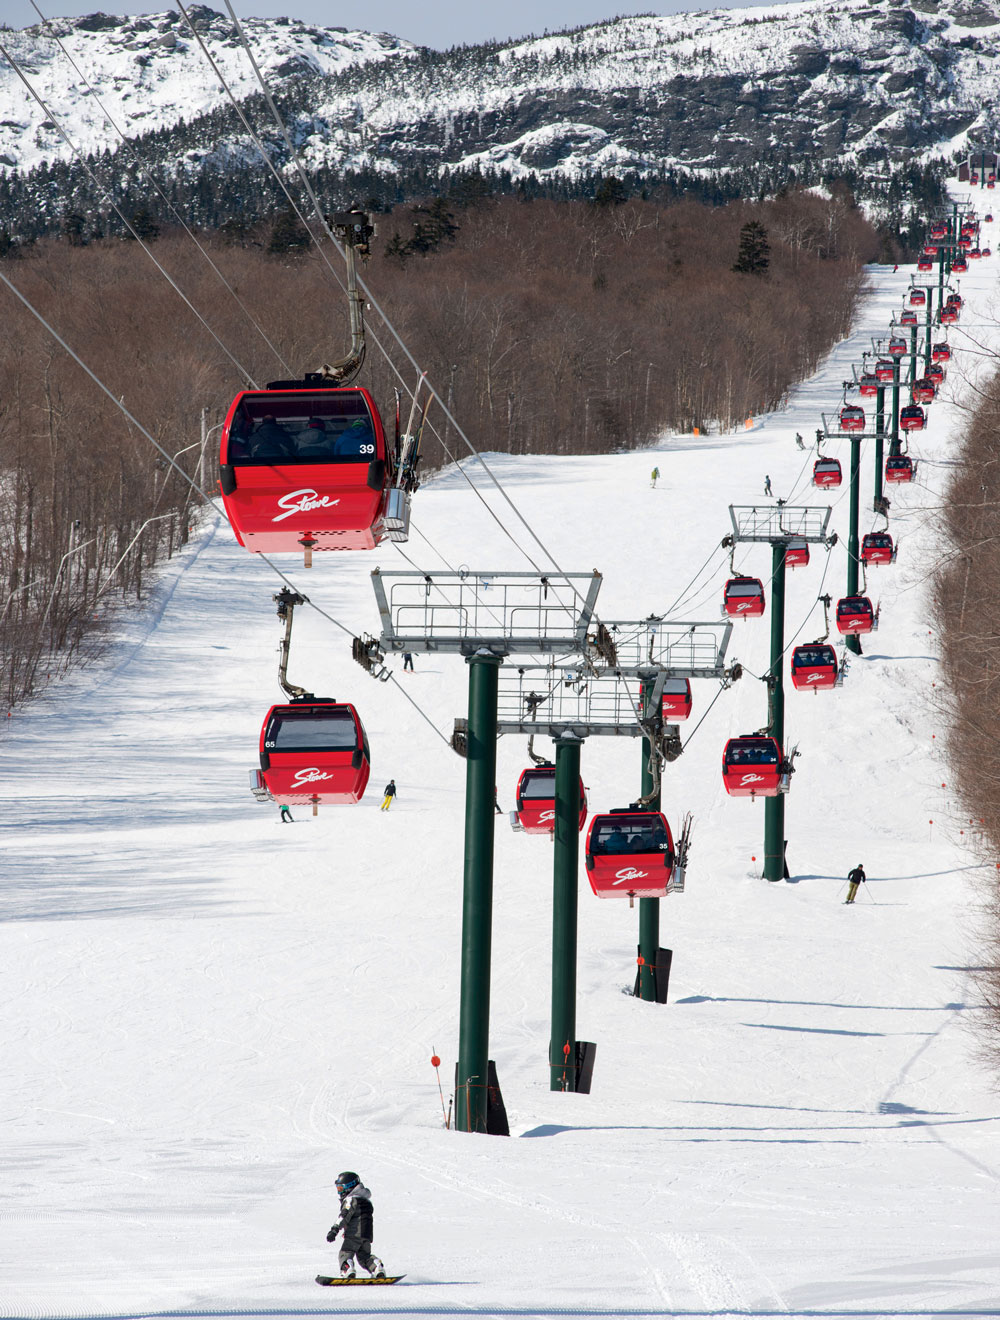 10 best winter towns in new england - new england today